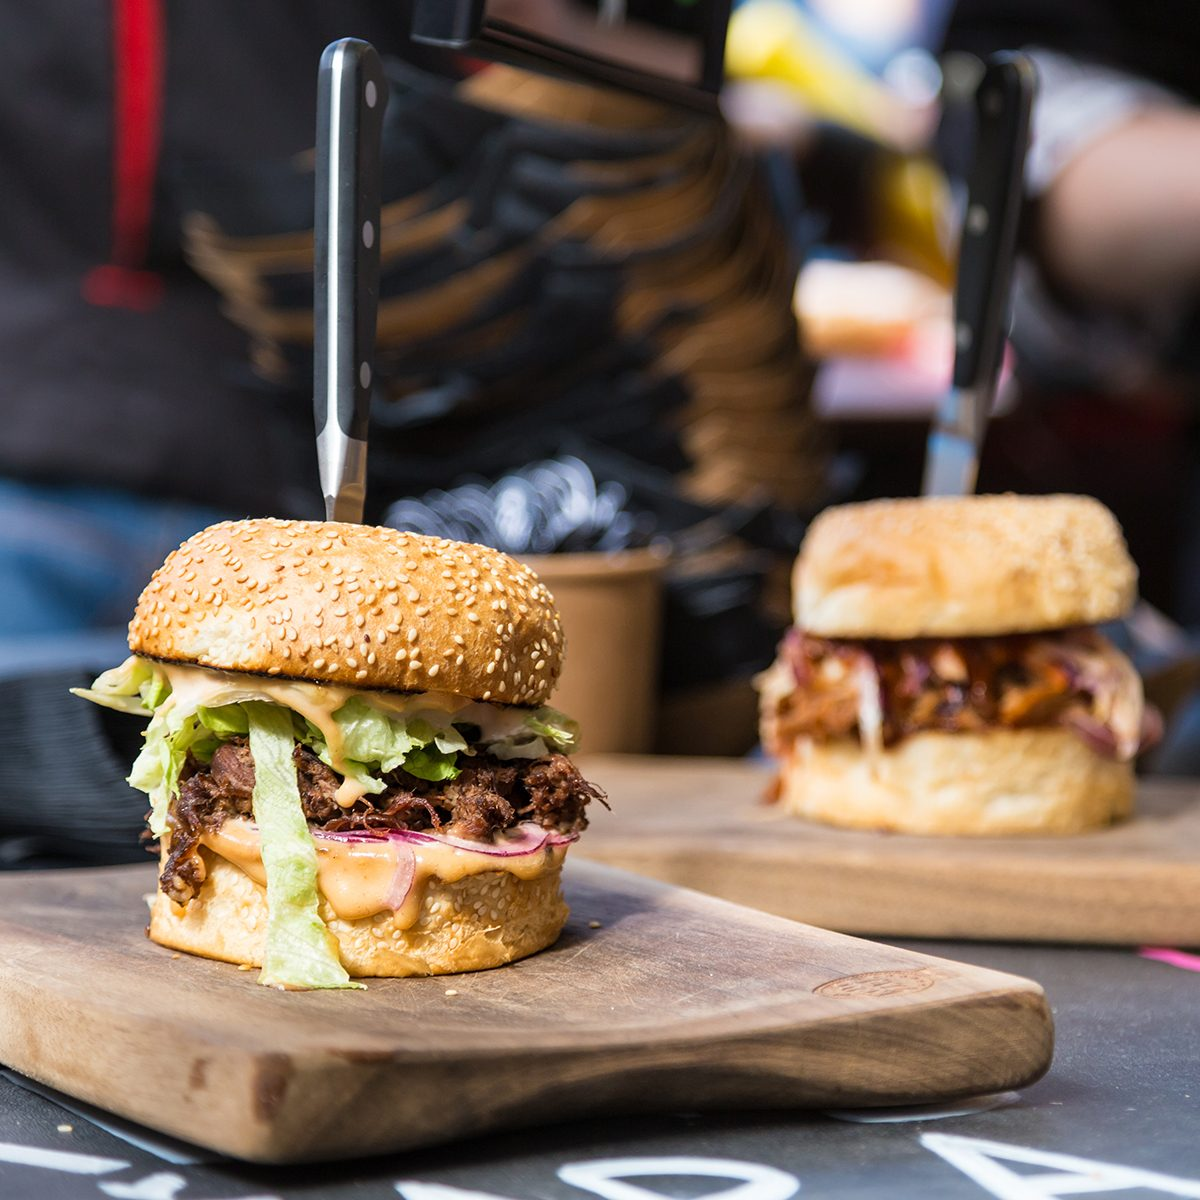 Burgers artfully presented on boards